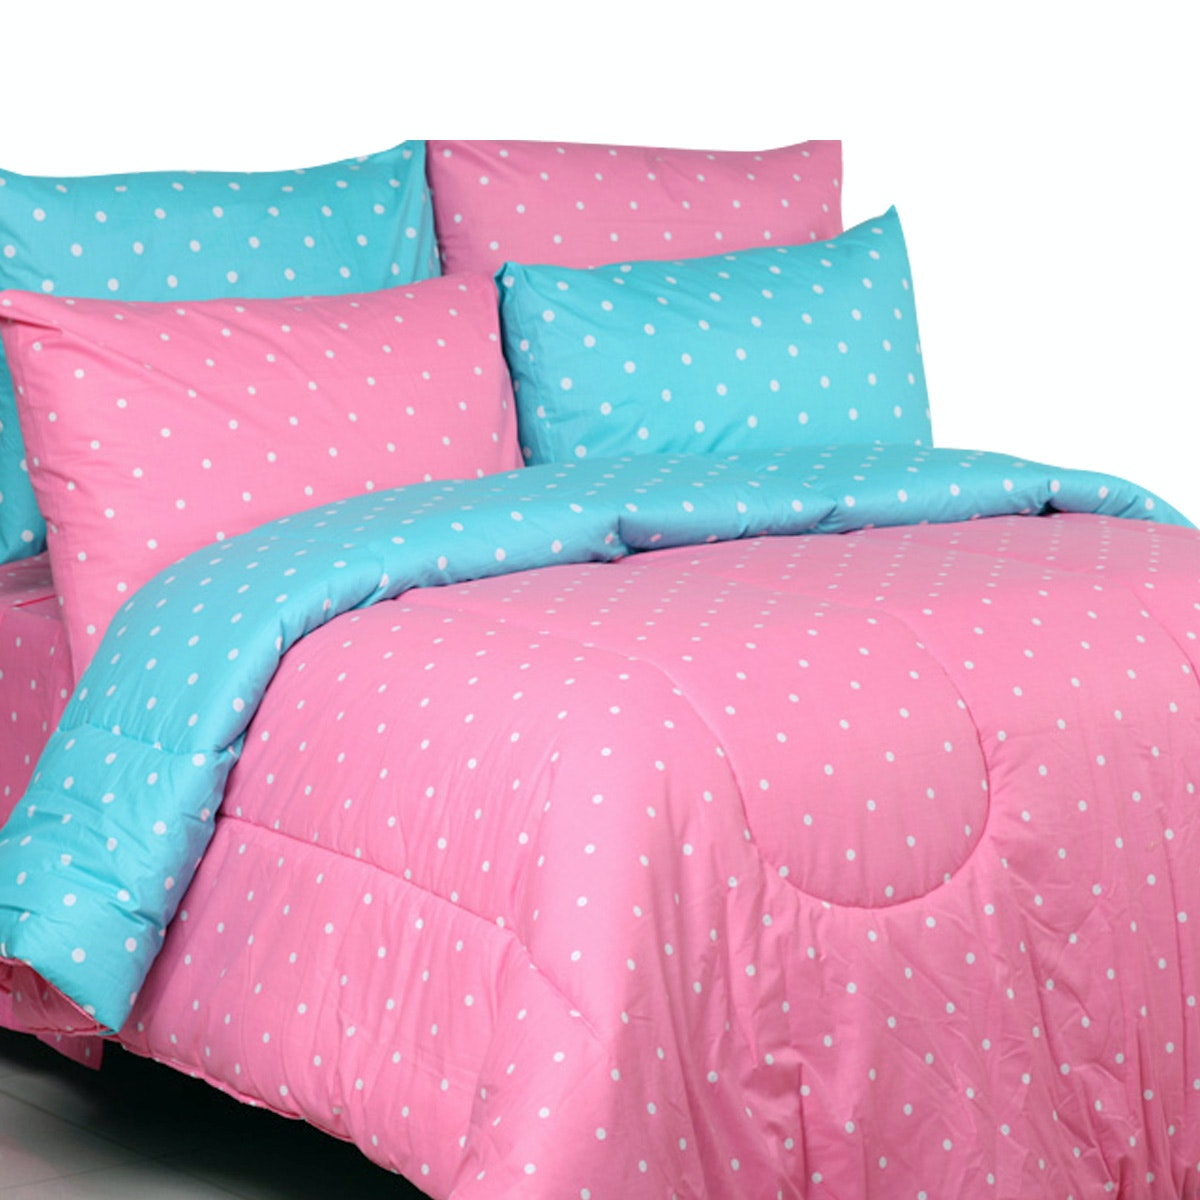 Sierra Bed Cover Dan Sprei Dottie Candy Mix Dottie Tosca 180x200